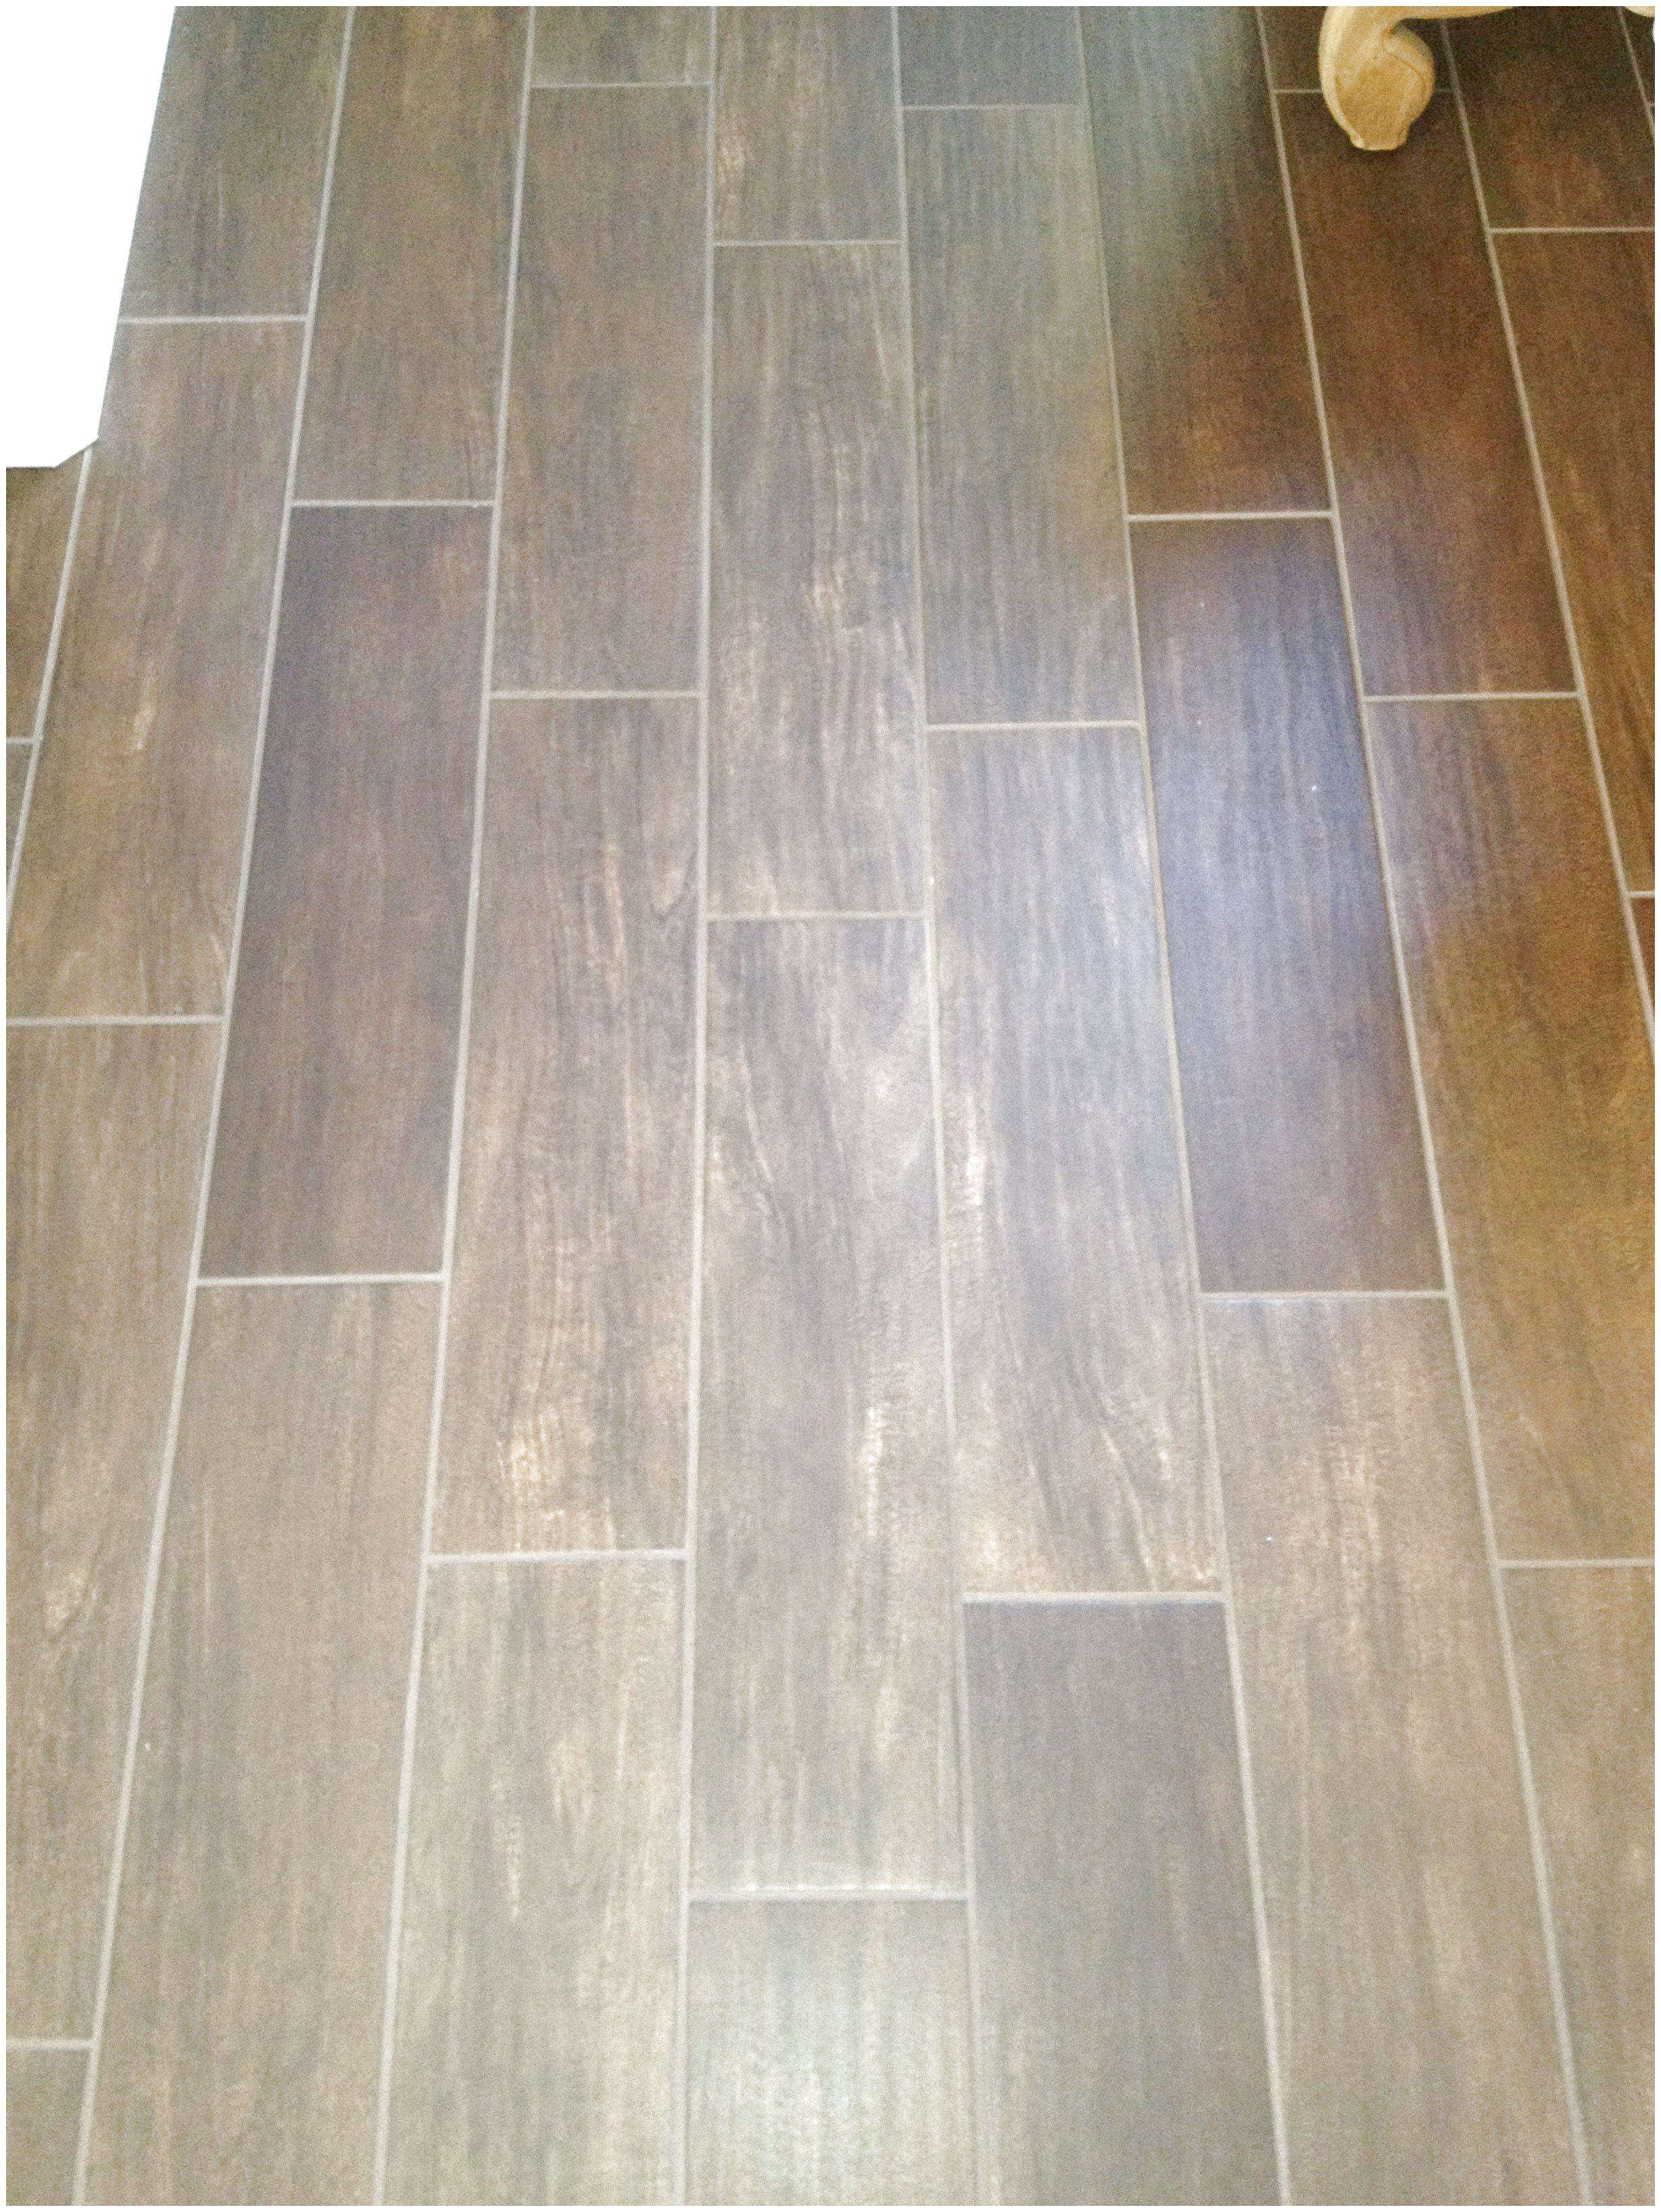 Ceramic Tile That Resembles Hard Wood Floors Awesome For A Screened In Porch Flooringideas Click The Image For Hardwood Floors Flooring Hardwood Floor Colors